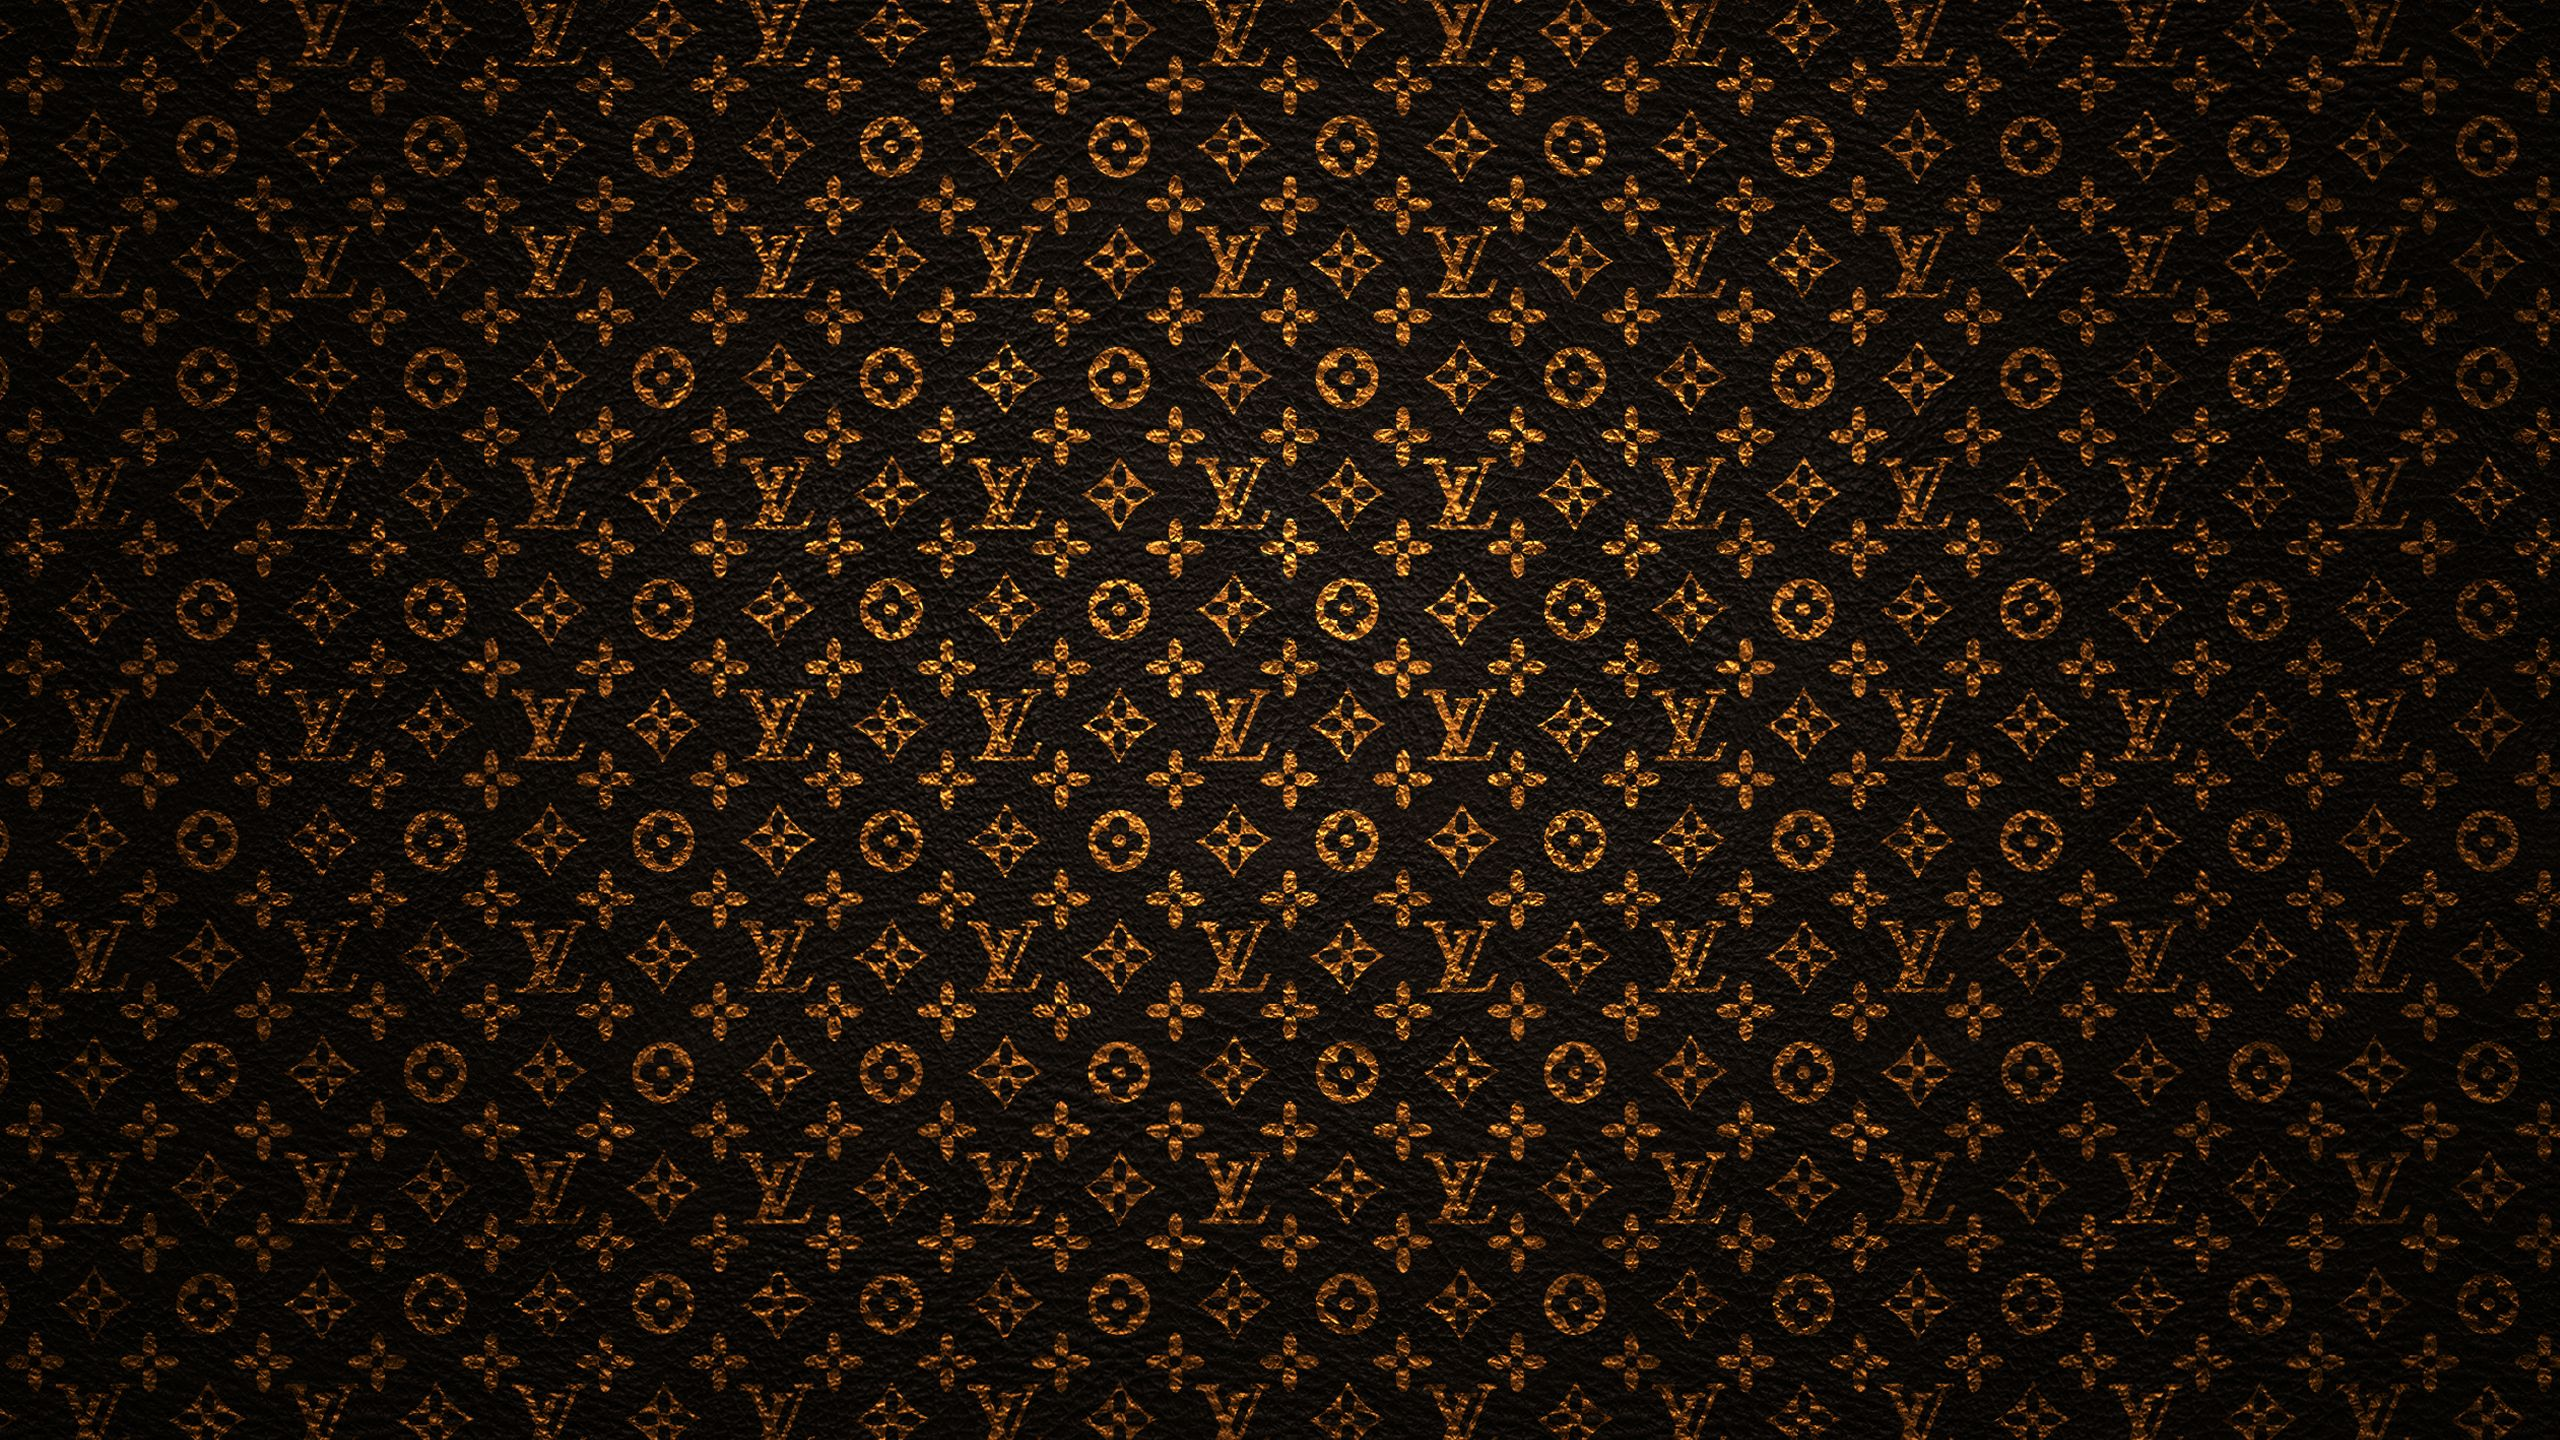 louis vuitton wallpaper gold brand 2560 1440 mood board pinterest. Black Bedroom Furniture Sets. Home Design Ideas